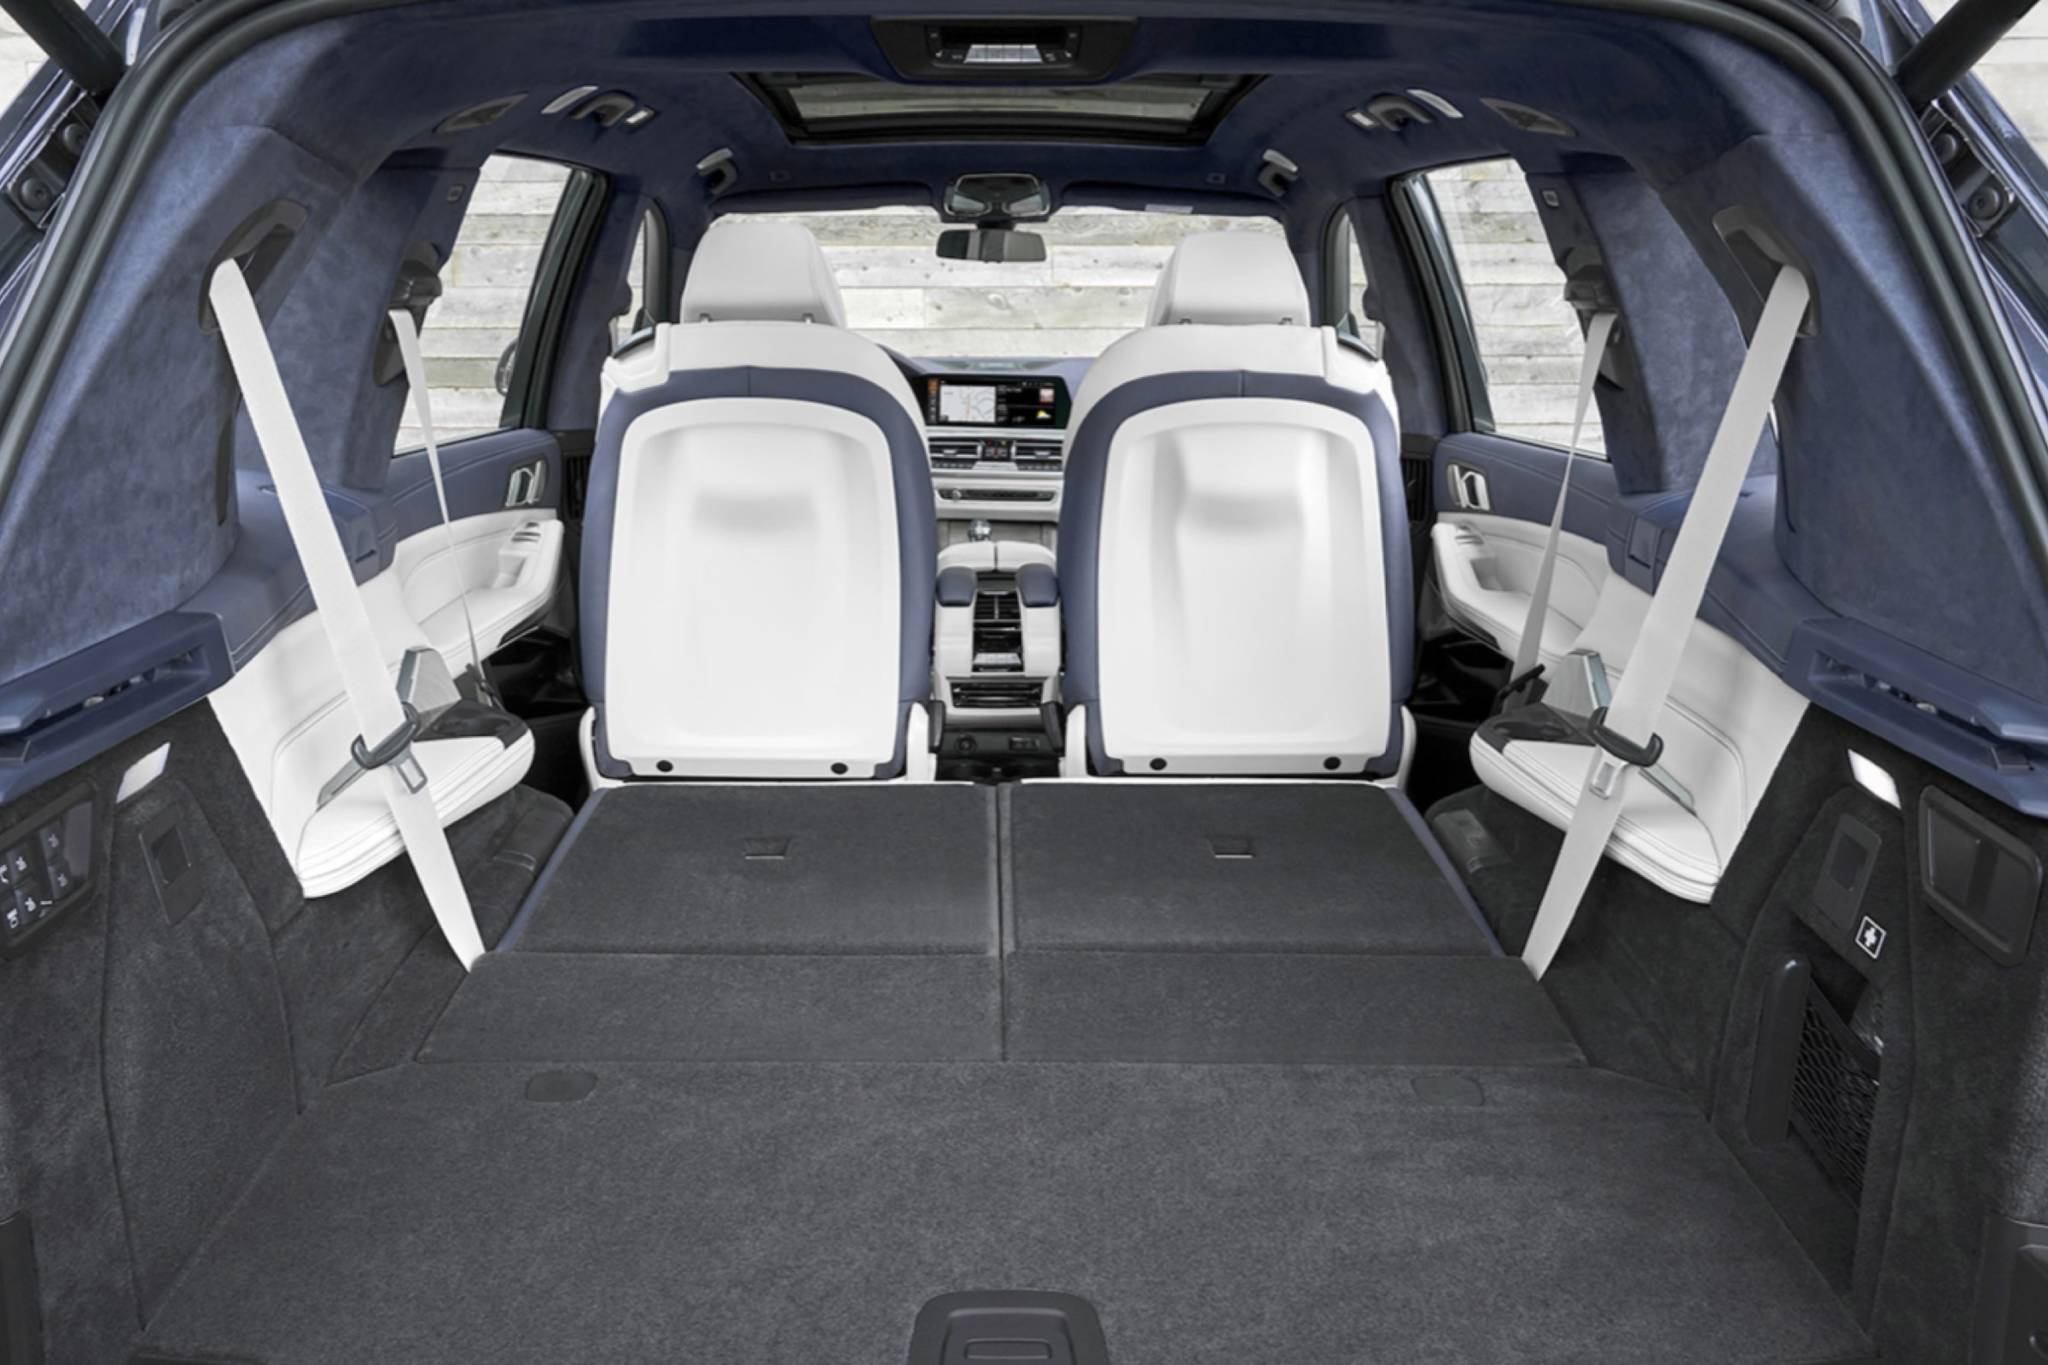 The X7 is longer than the X5 by 23 centimetres, which means the X7 has a standard third-row seat and more cargo room. Photo: BMW